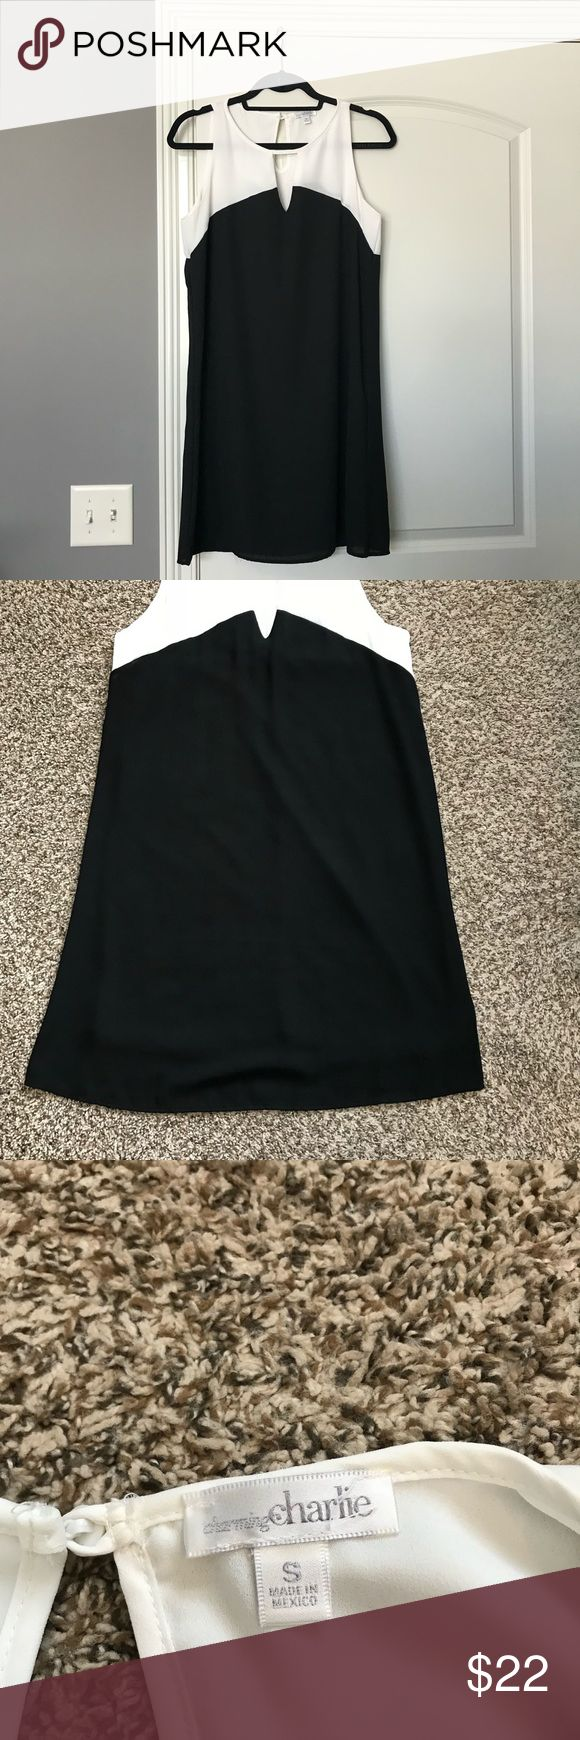 Black and white dress Worn once! There is some fraying on the back of dress pictured. Great for any occasion. Key hole on front and back Charming Charlie Dresses